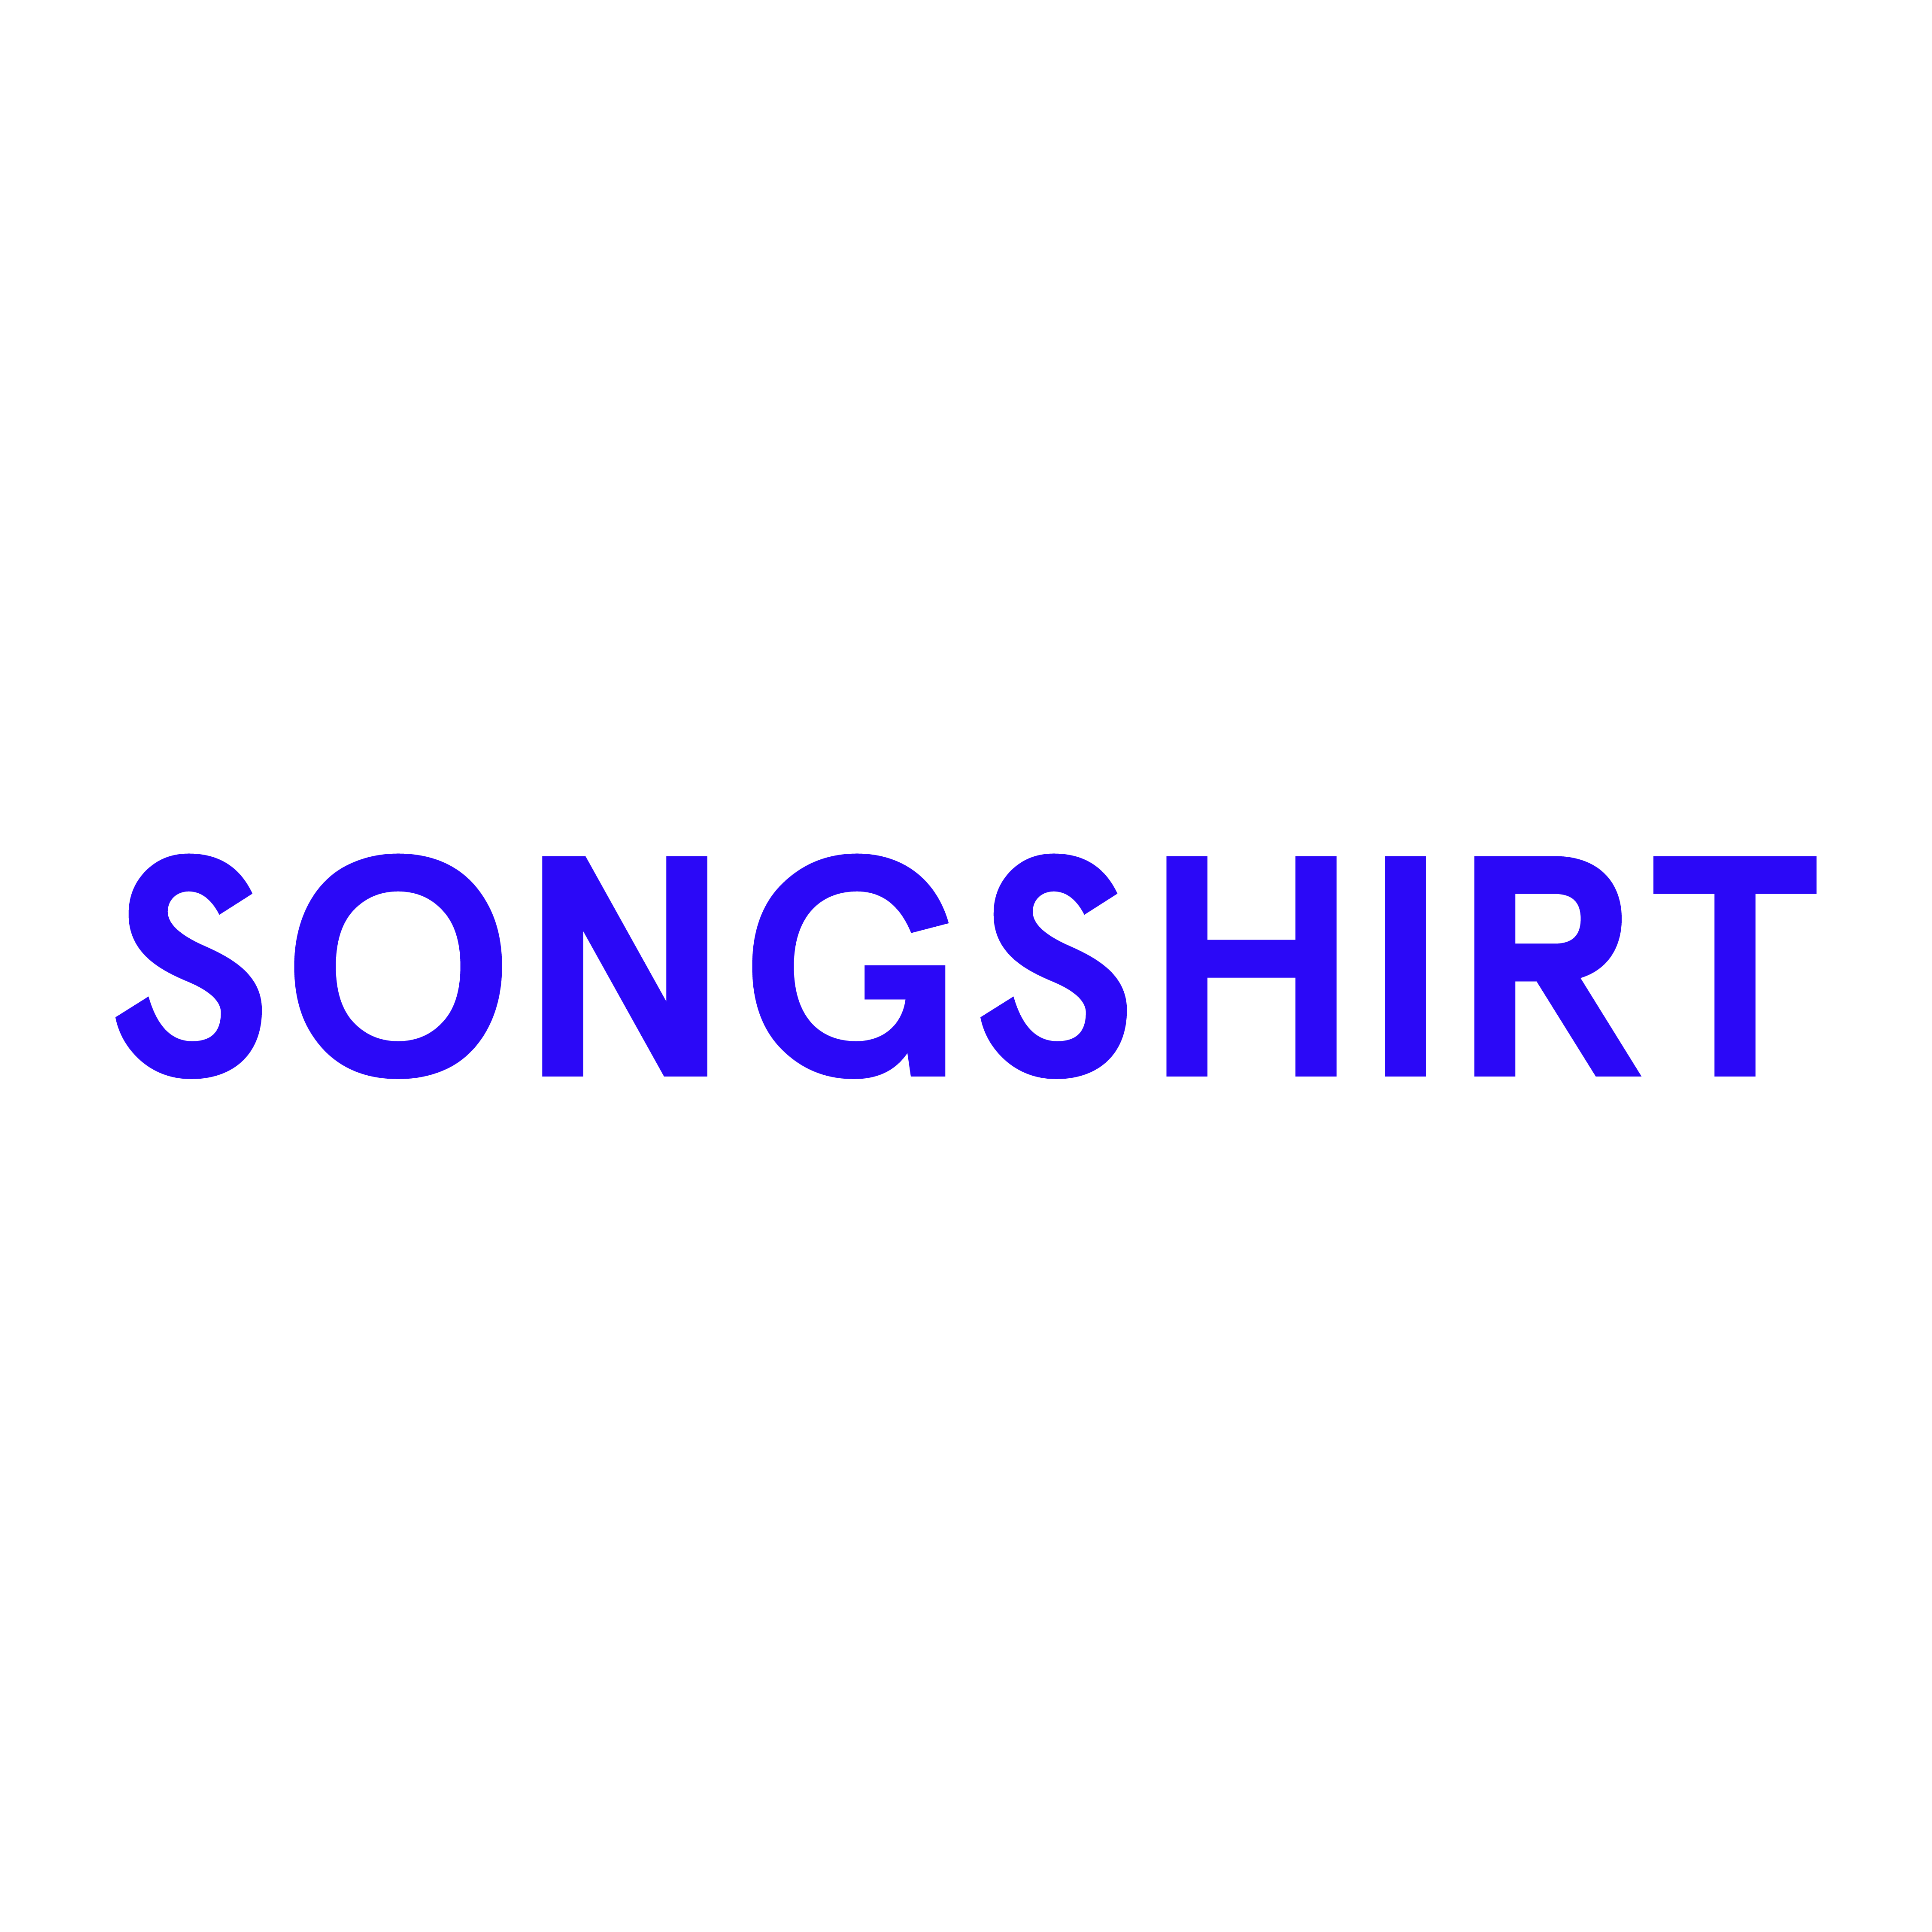 Songshirt - Groenewoud Marketing